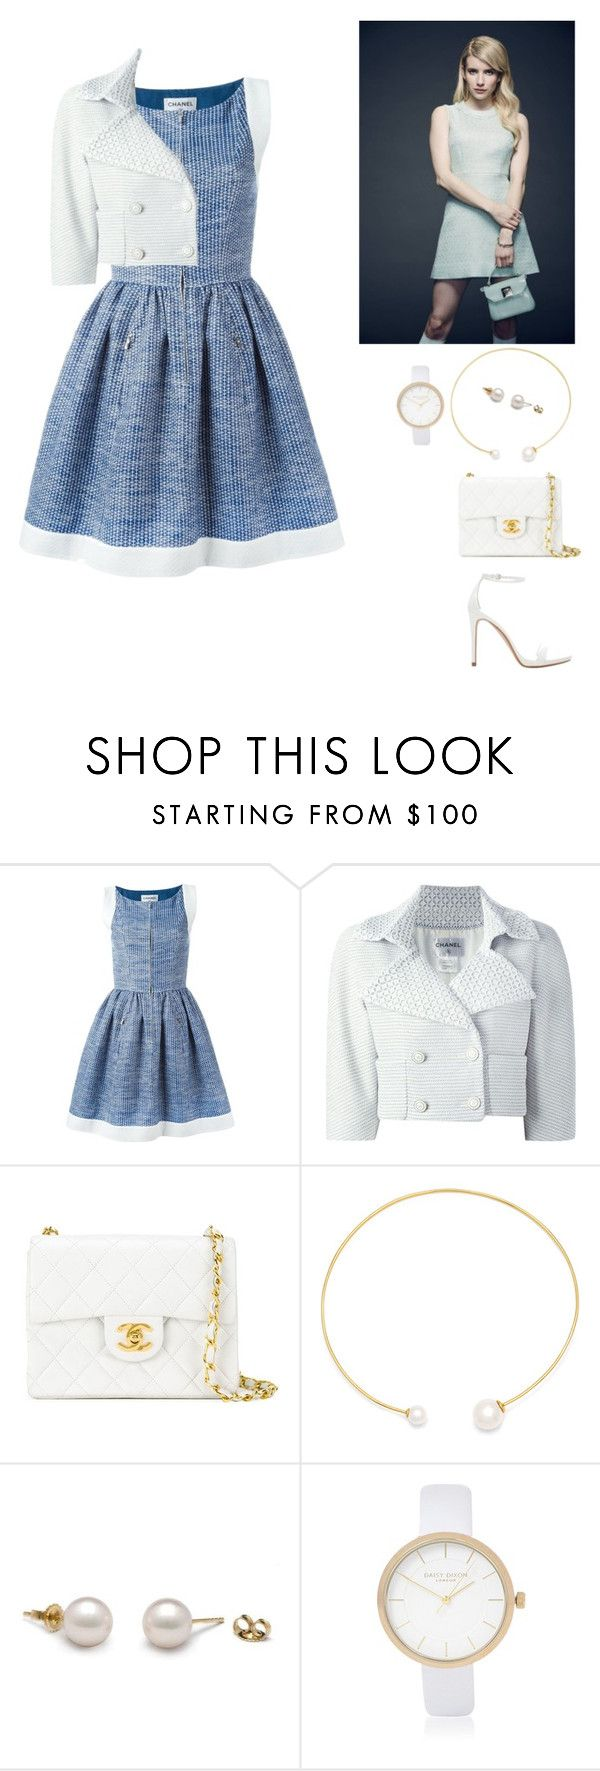 """""""Untitled #430"""" by balsam01 ❤ liked on Polyvore featuring Chanel, Fallon, River Island, Zara, Model, outfits, modelstyle and sceamqueens"""